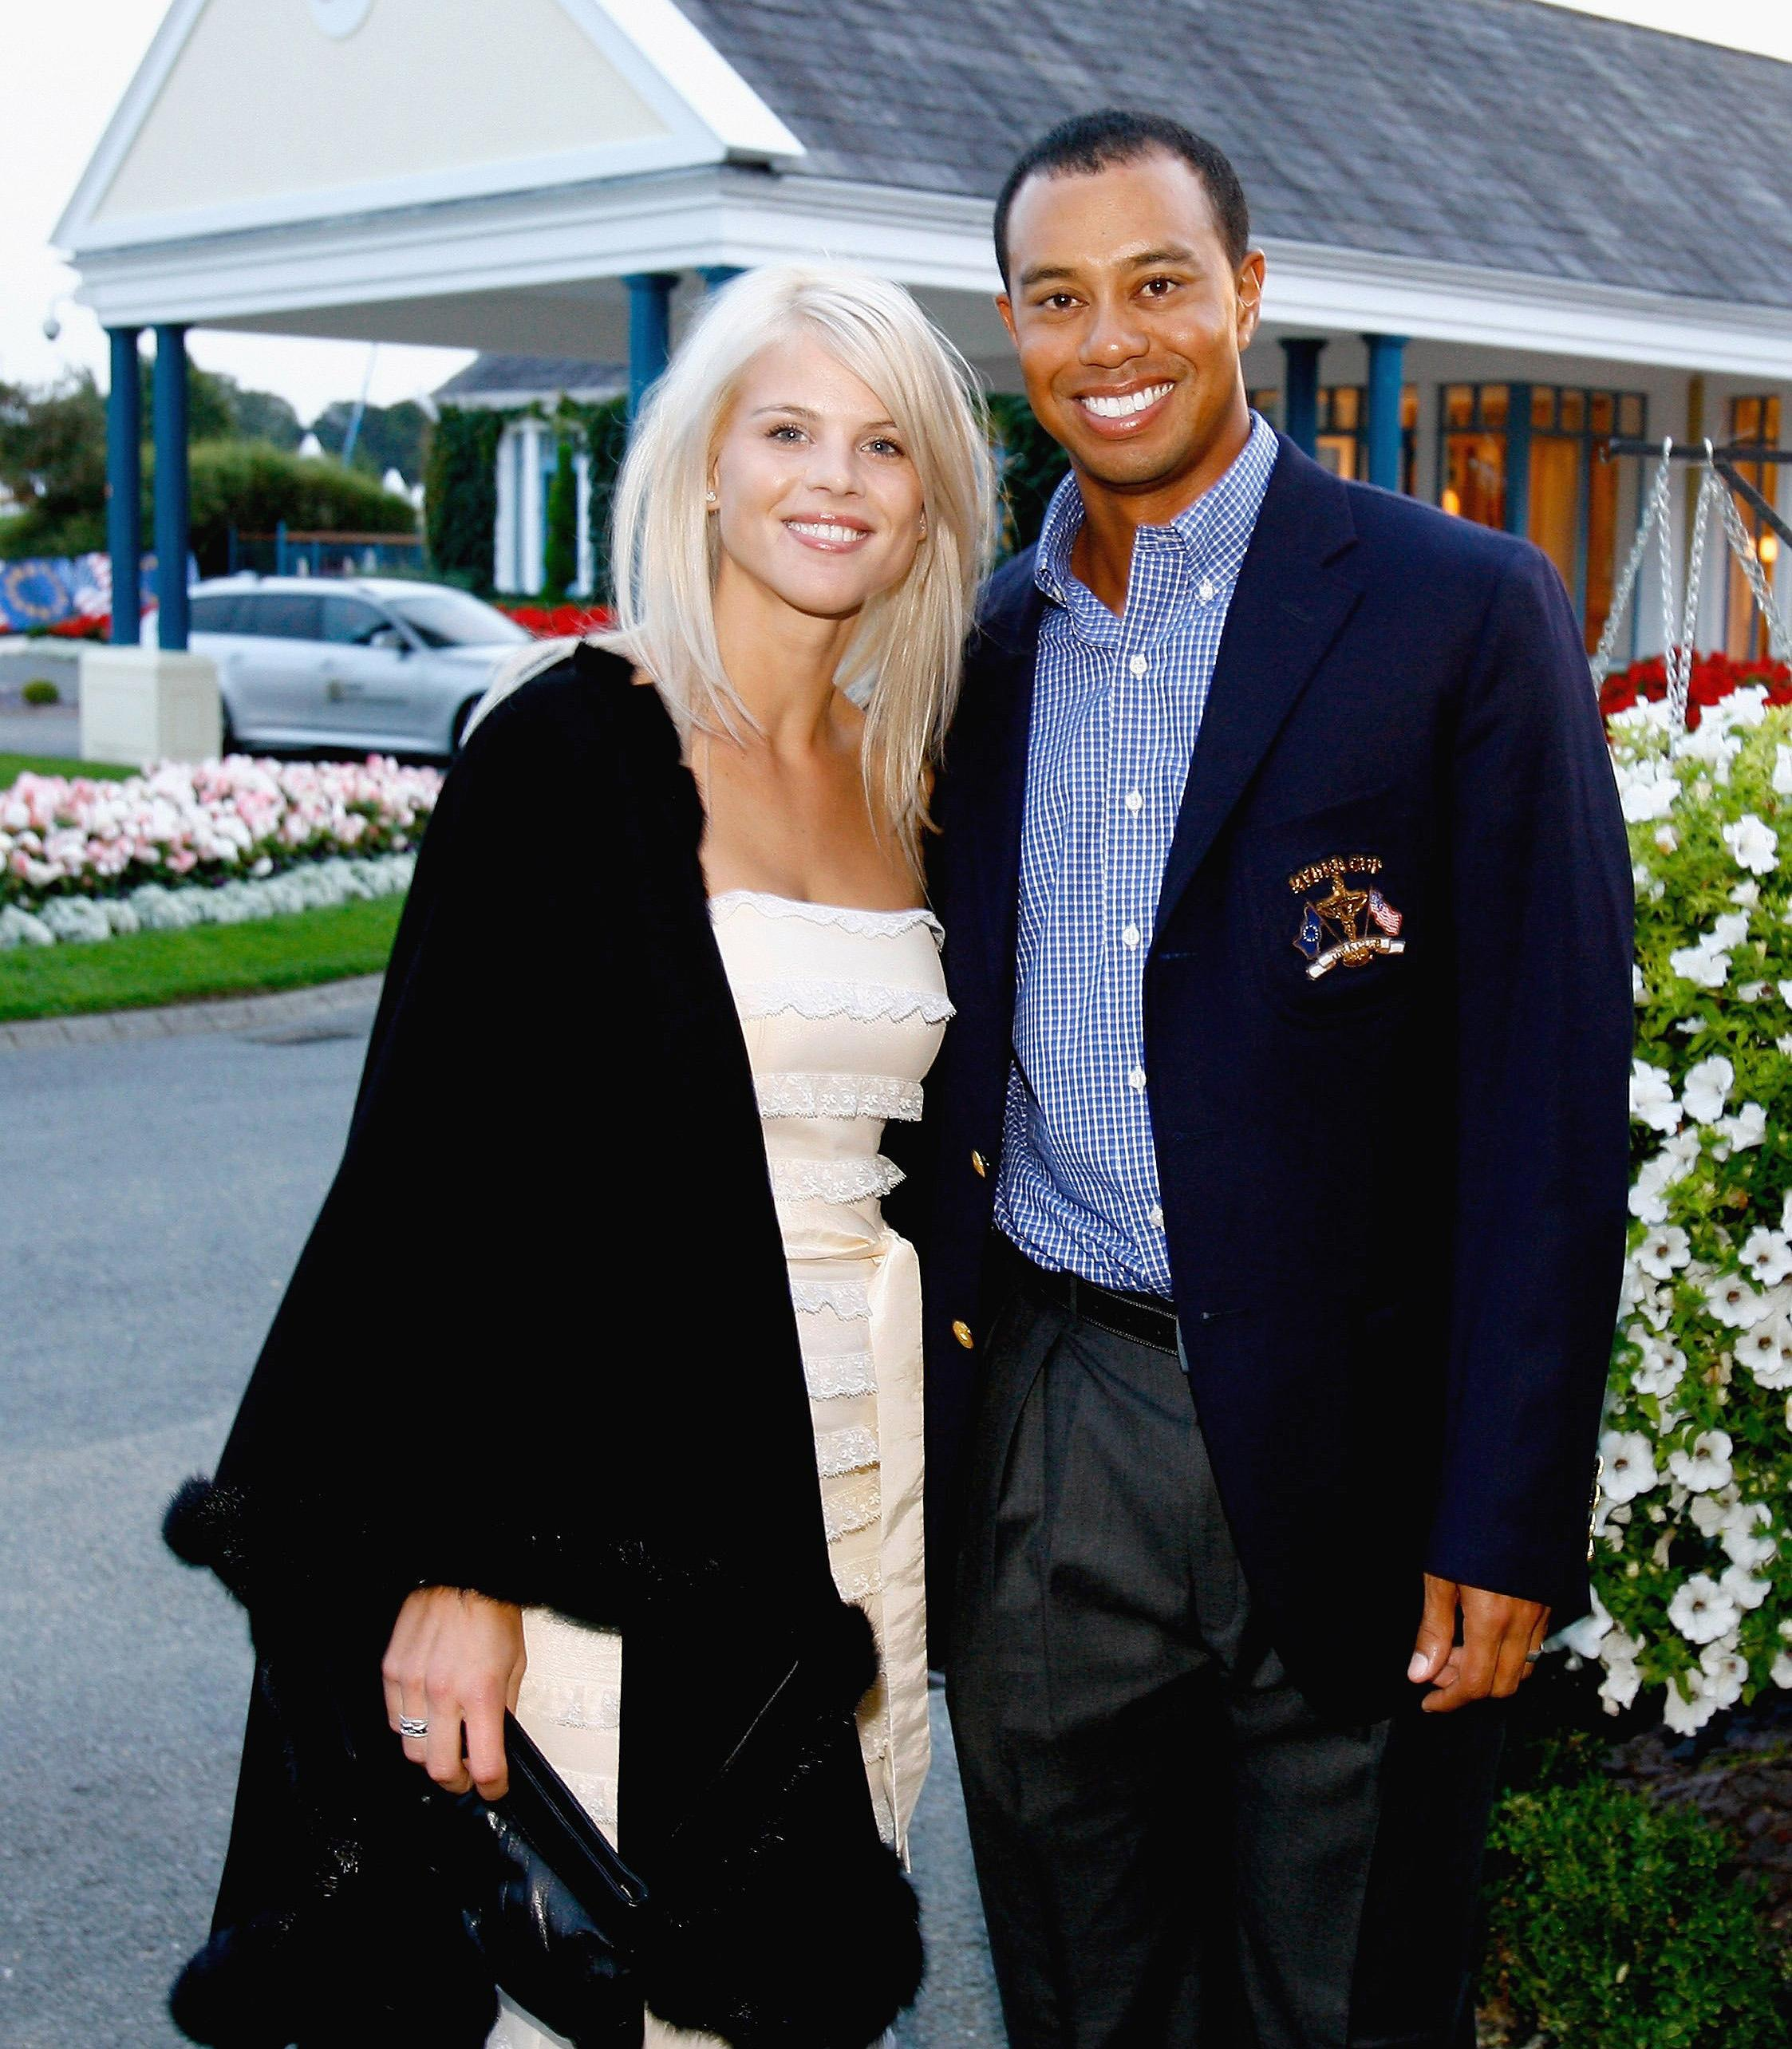 Tiger Woods Reveals His One Life Regret — and No, It's Not Cheating on Elin Nordegren